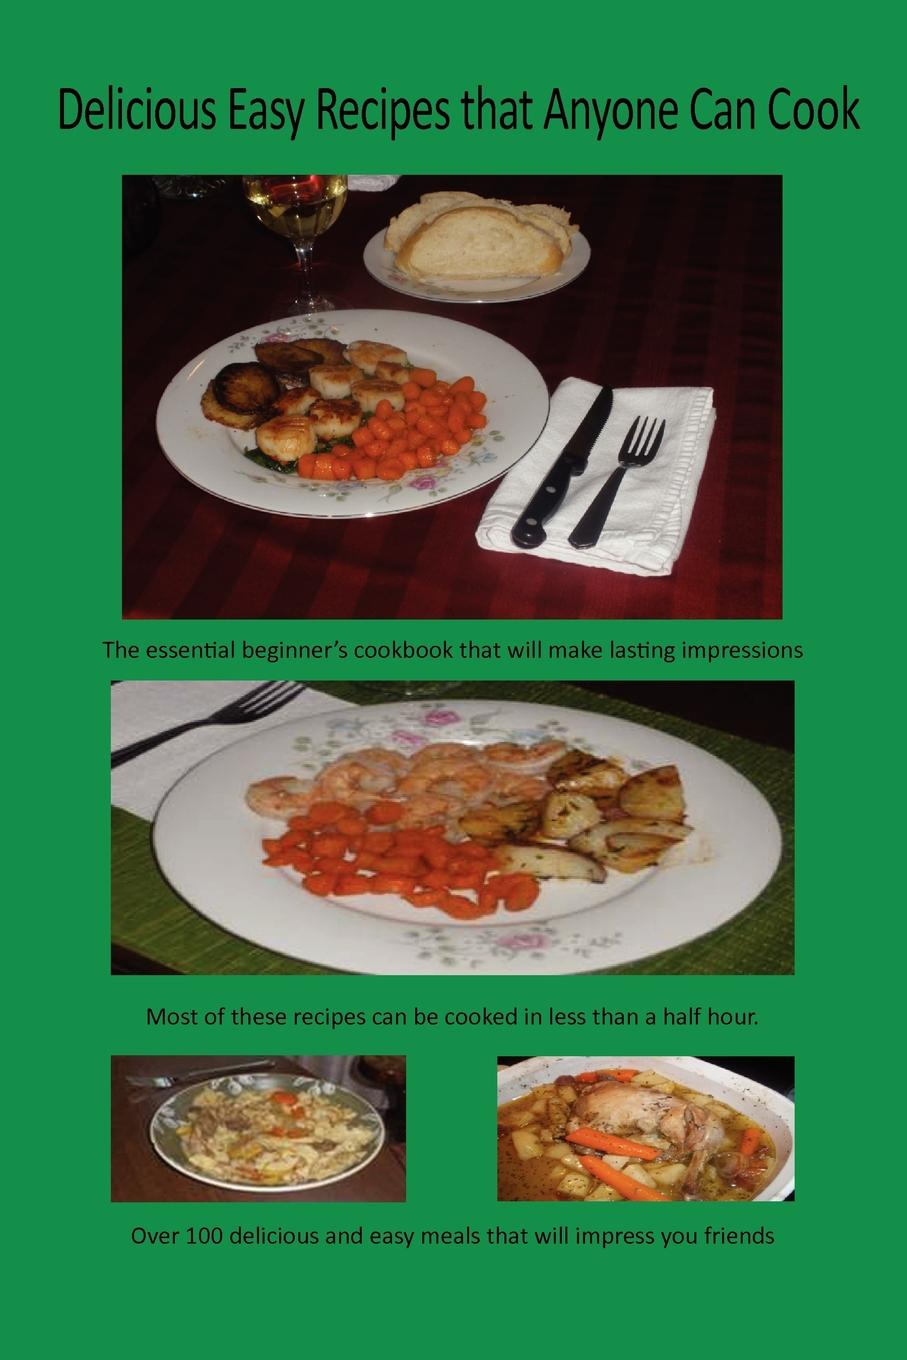 Paul Butkevich Delicious Easy Recipes That Anyone Can Cook sallie stone 25 delicious soup recipes